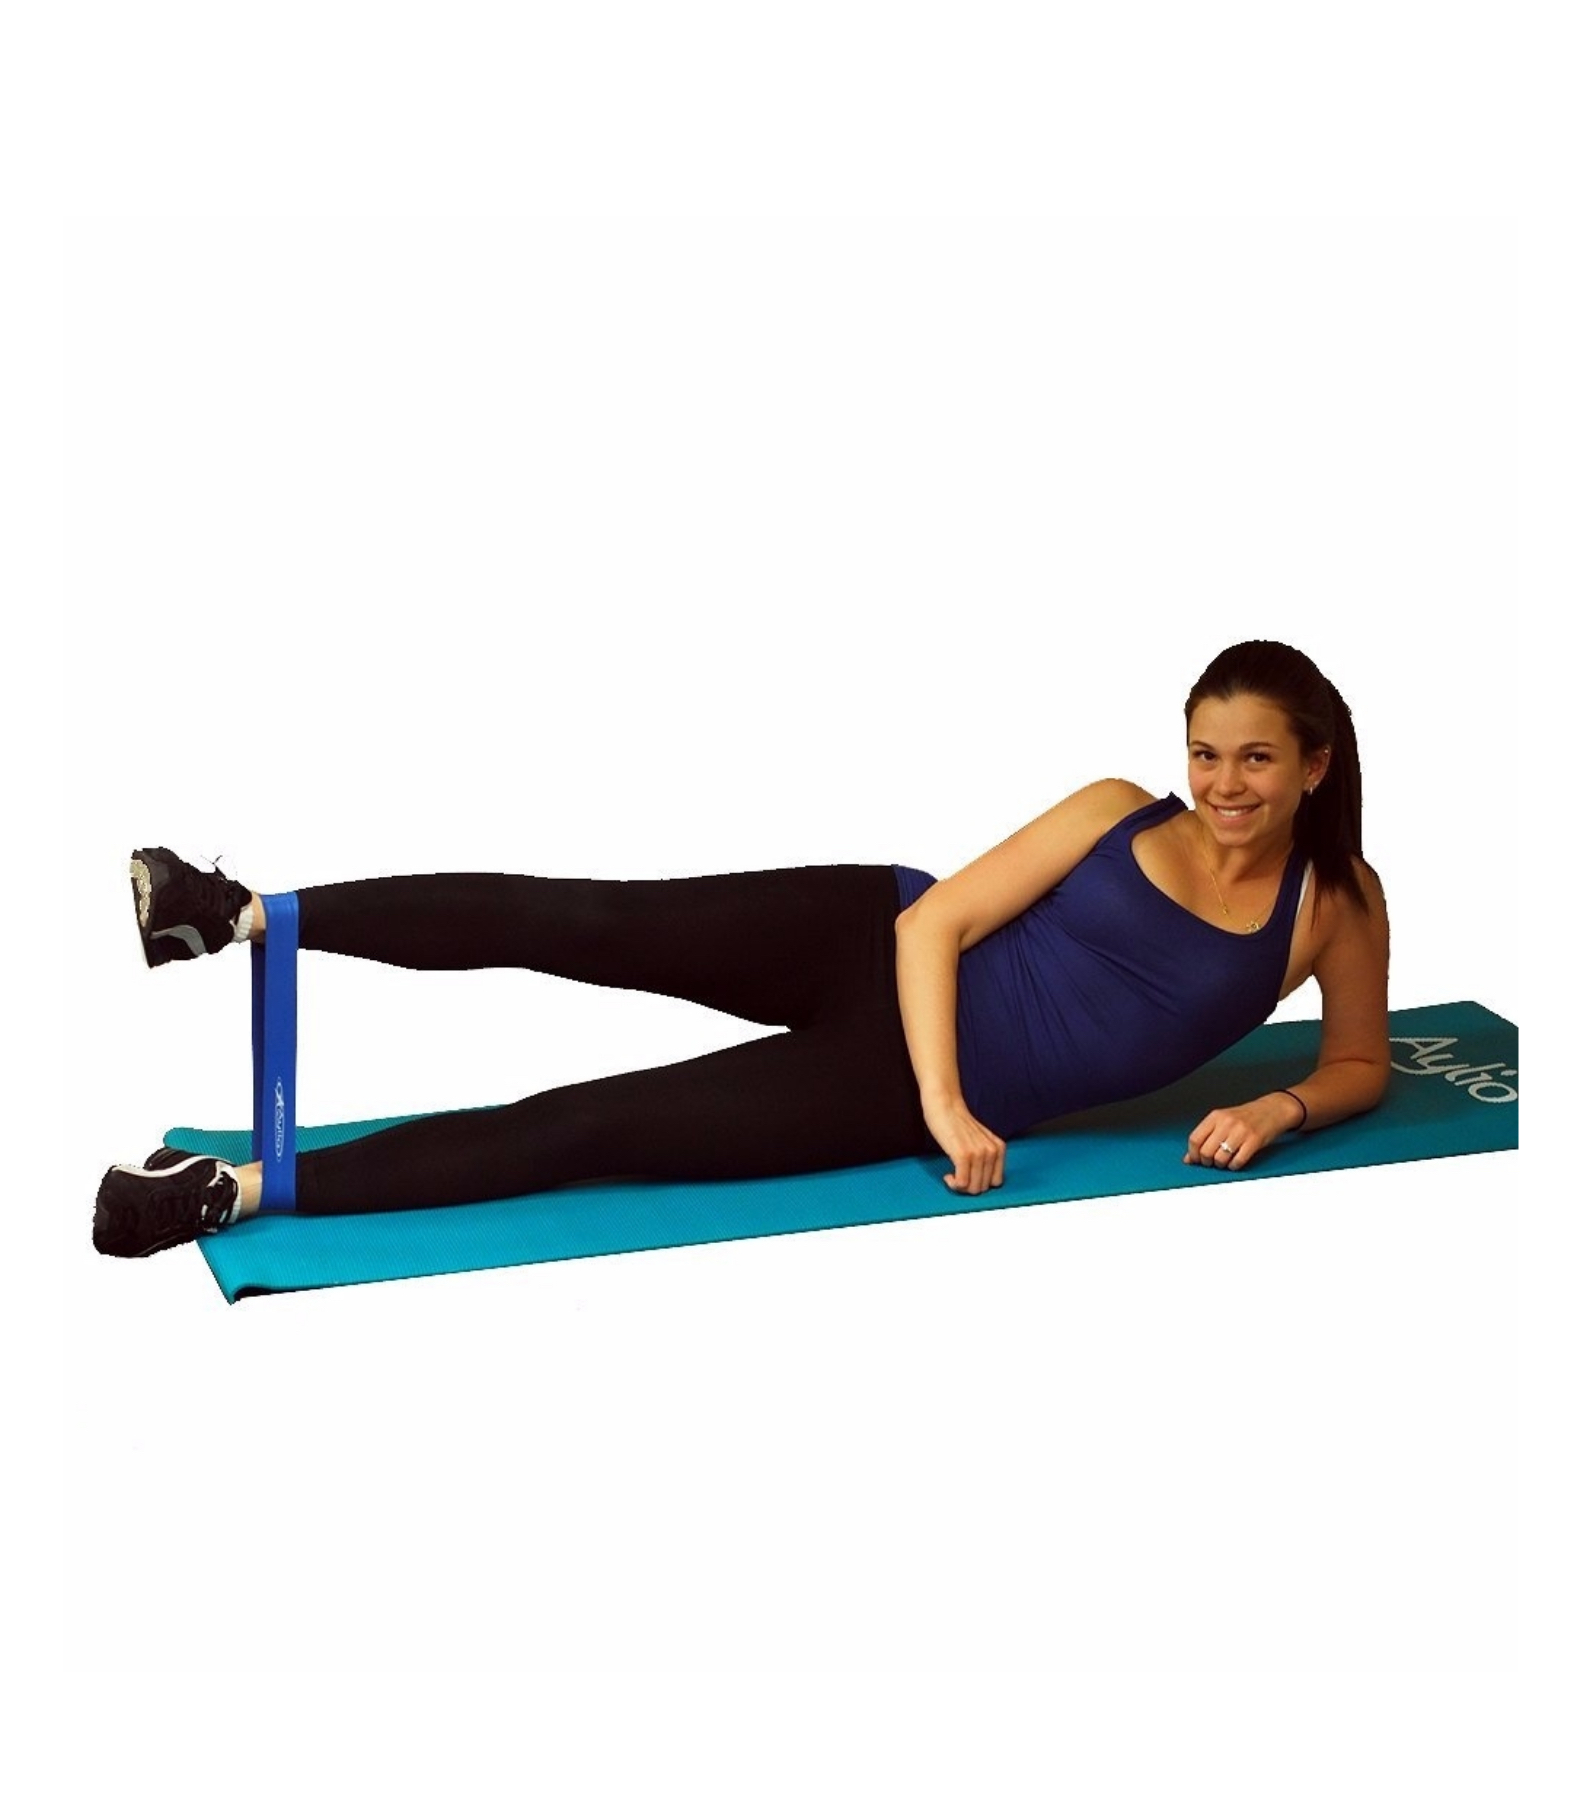 Exercising loop resistance band fitness equipment